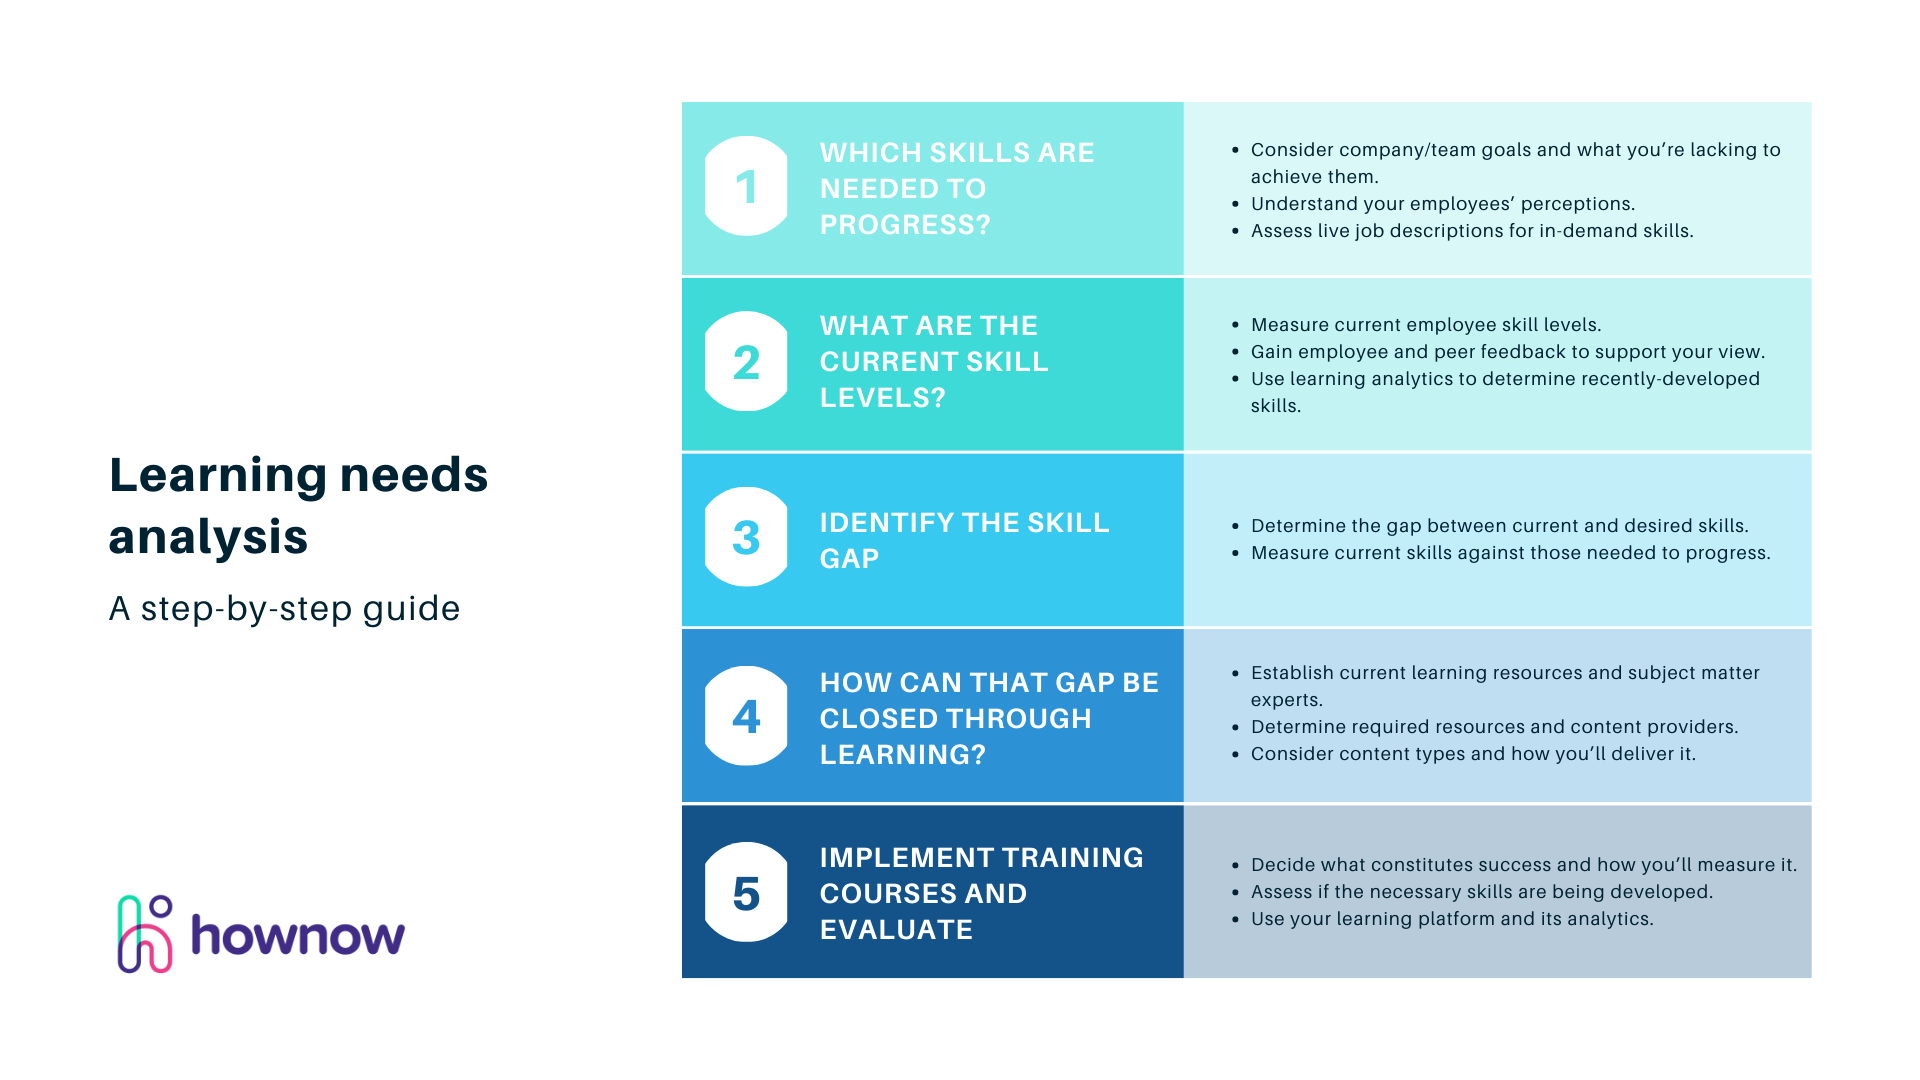 A step-by-step learning needs analysis guide